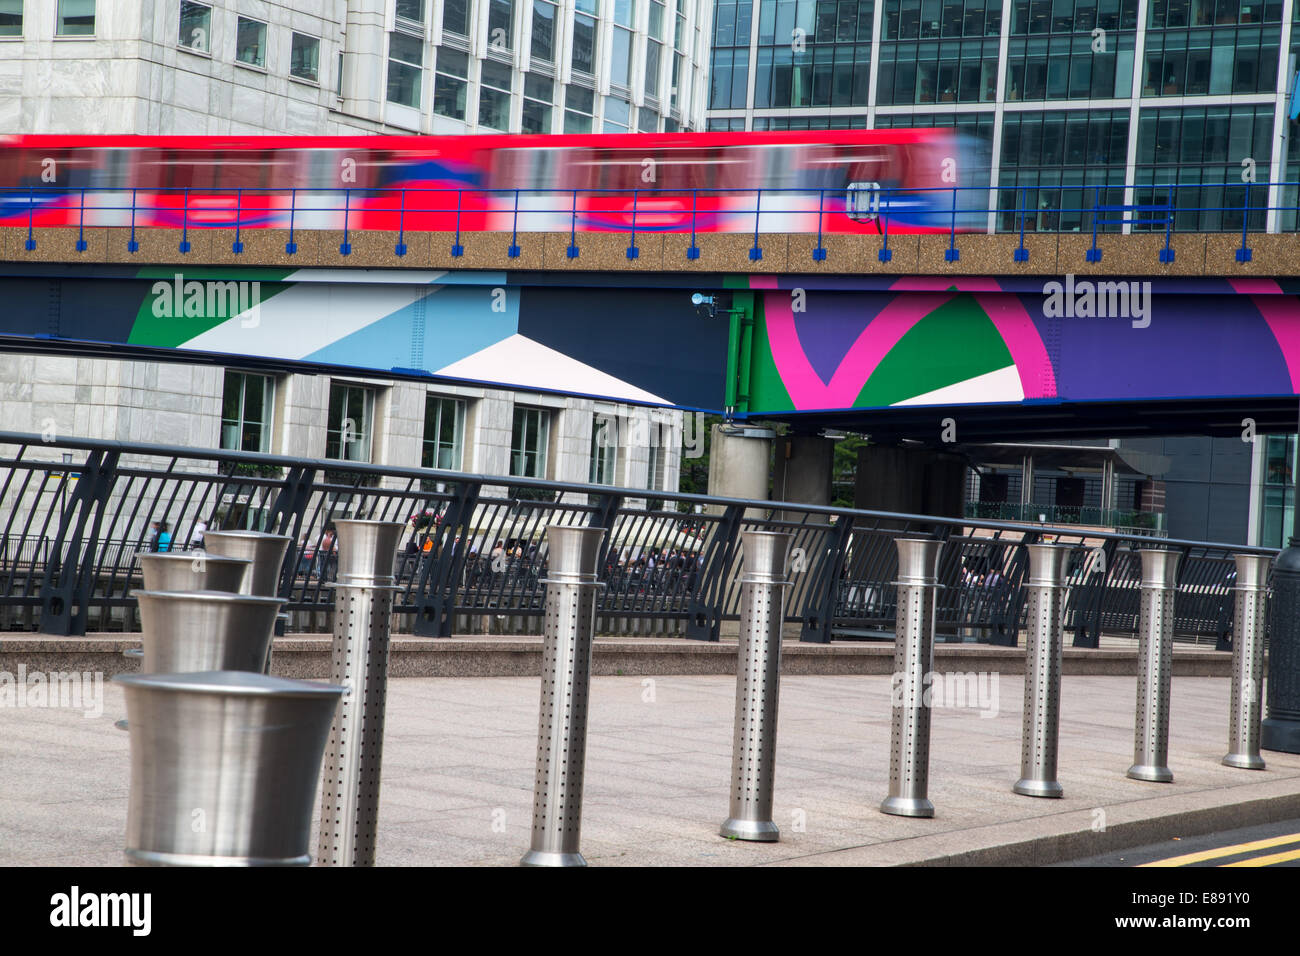 The Docklands light railway at Canary Wharf heading south - Stock Image